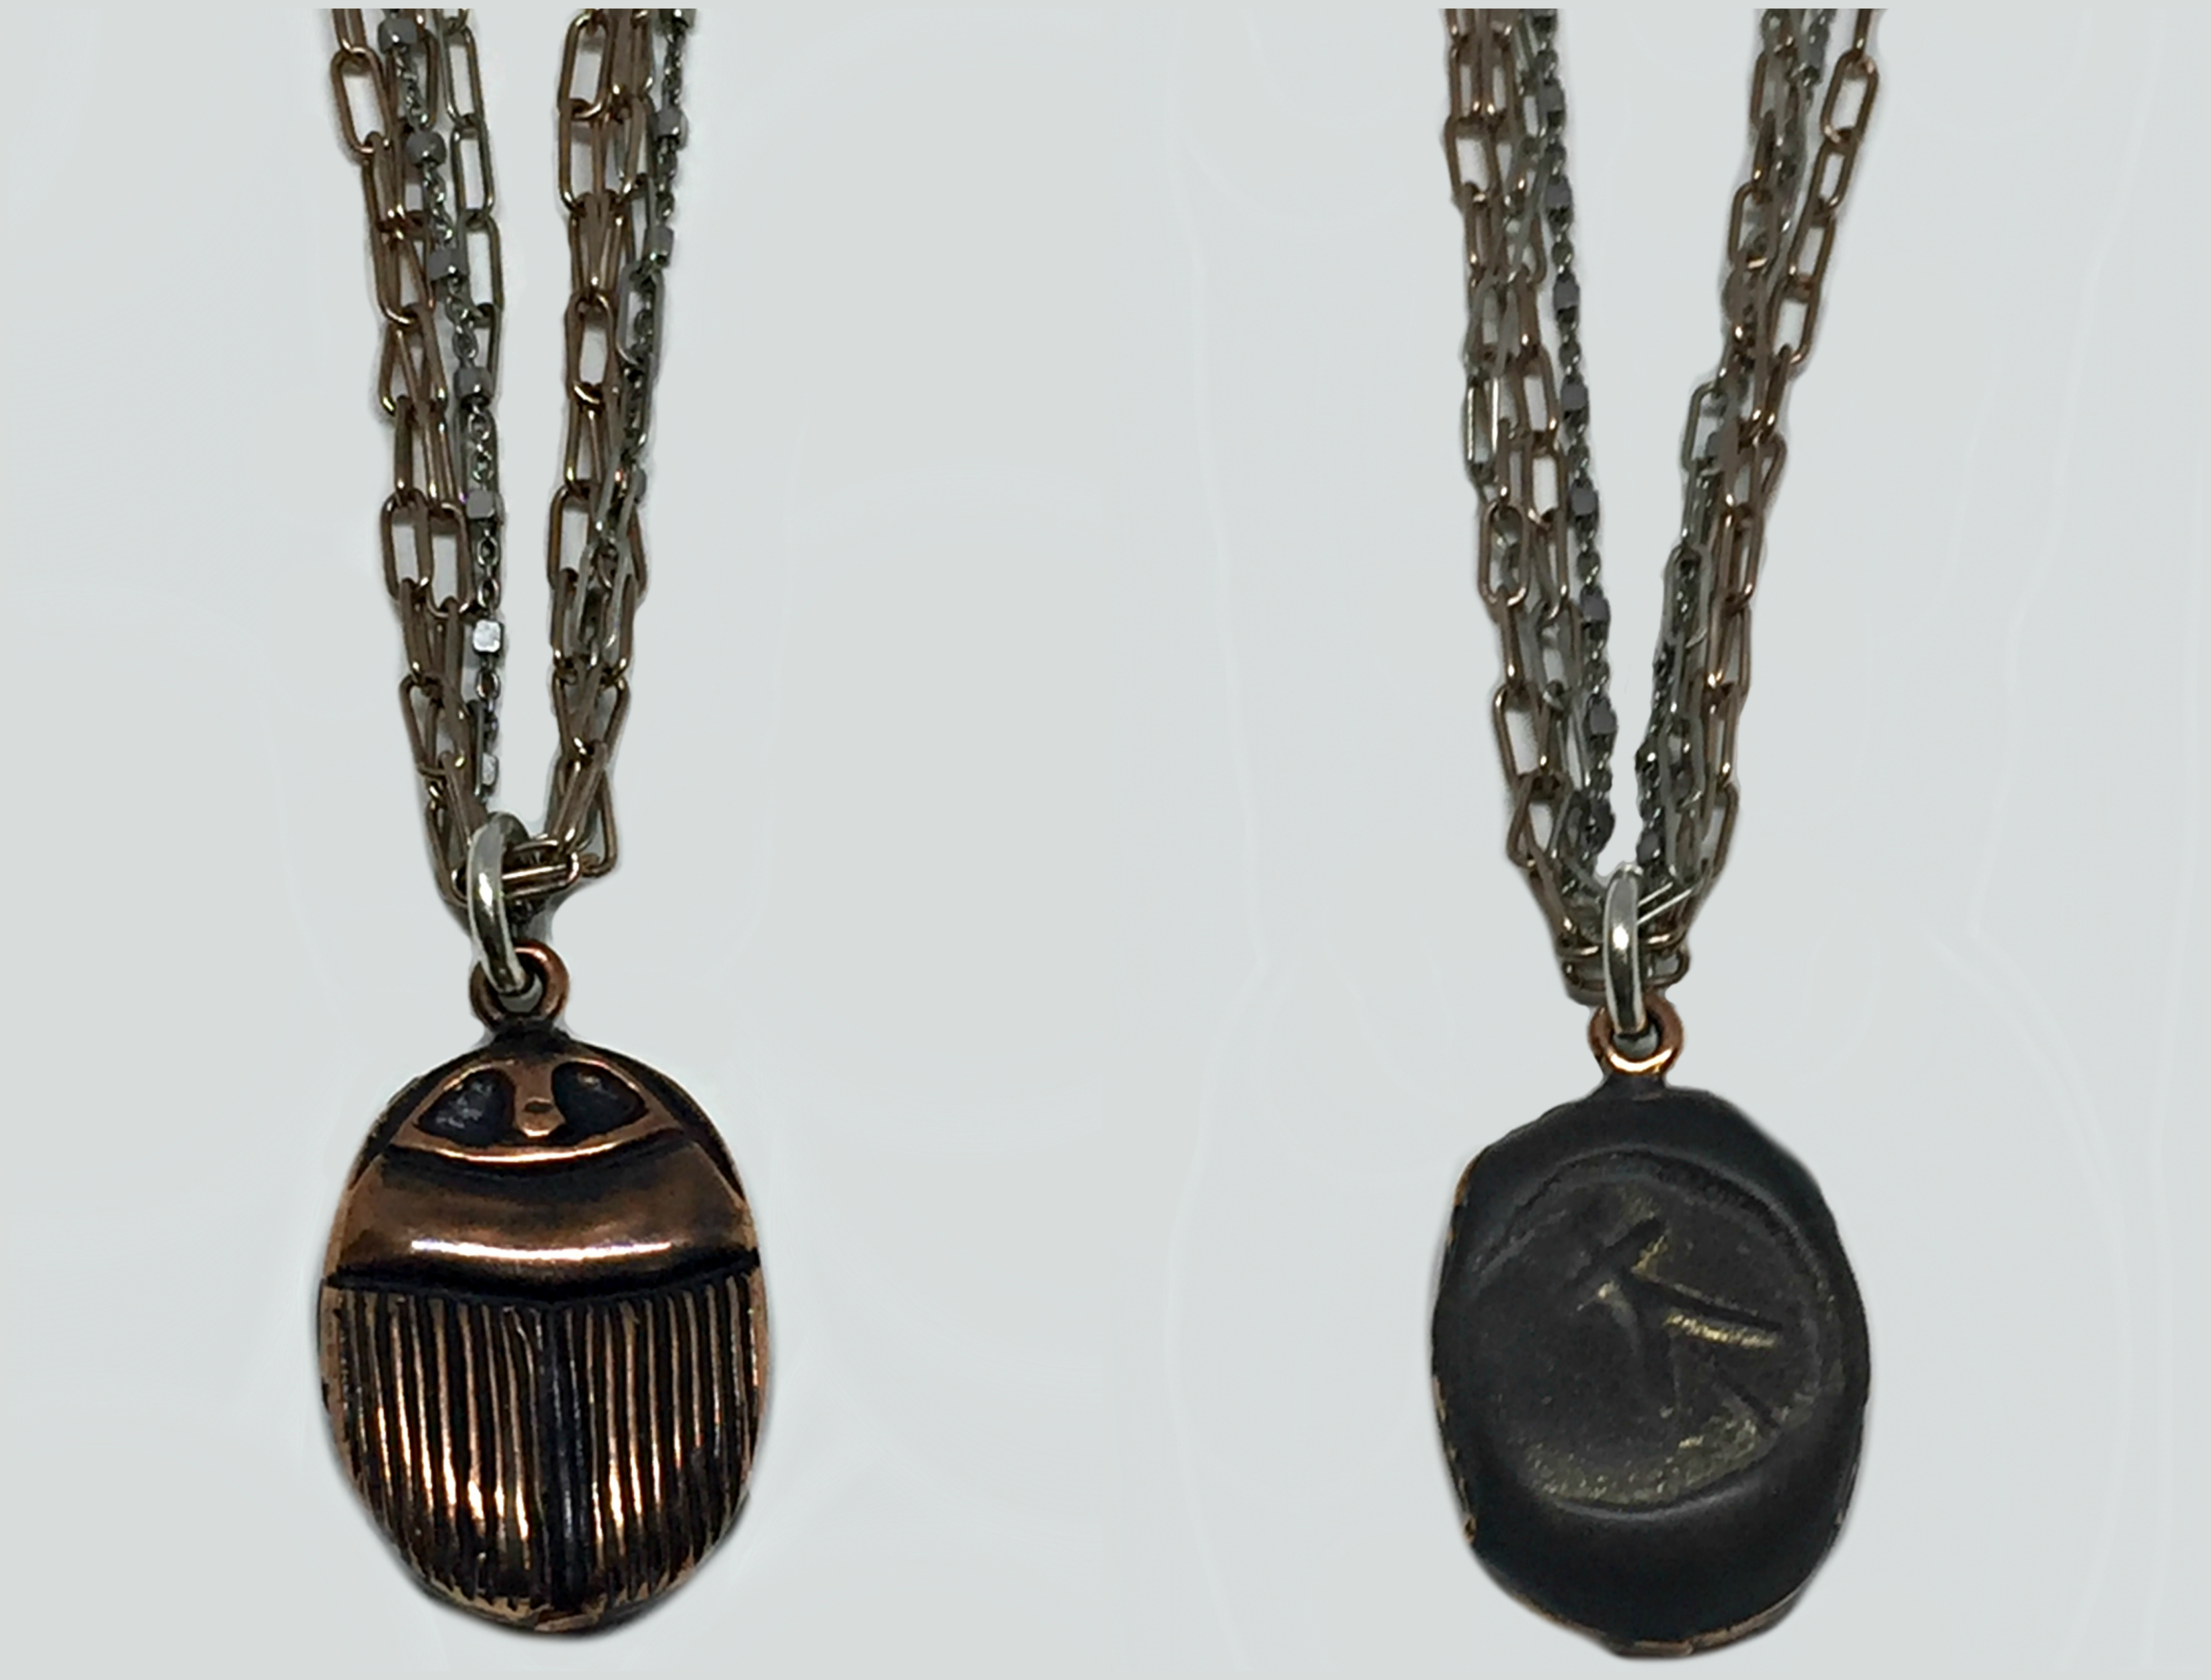 Rose Gold, Sterling Silver, + Resin Scarab Pendant Necklace by Karyn Chopik | Effusion Art Gallery + Cast Glass Studio, Invermere BC